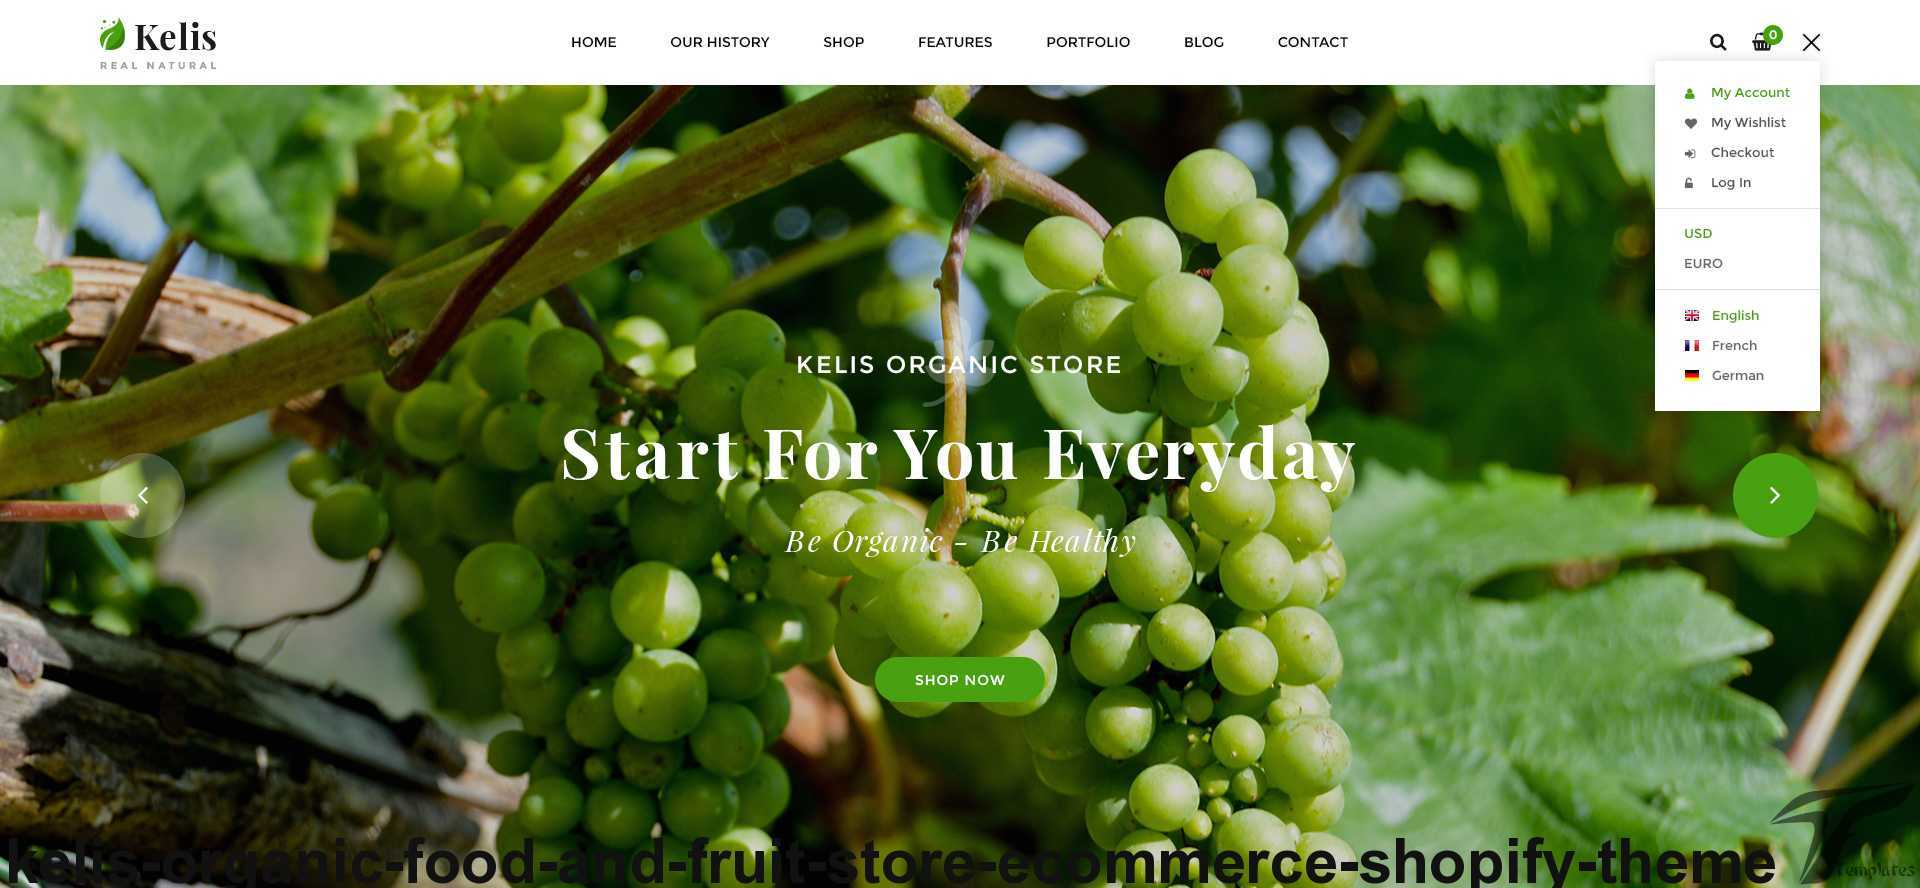 https://images.besthemes.com/images/h1_kelis-organic-food-and-fruit-store-ecommerce-shopify-theme17-_-234864139/Theme-s20s-Preview/16_Account.jpg